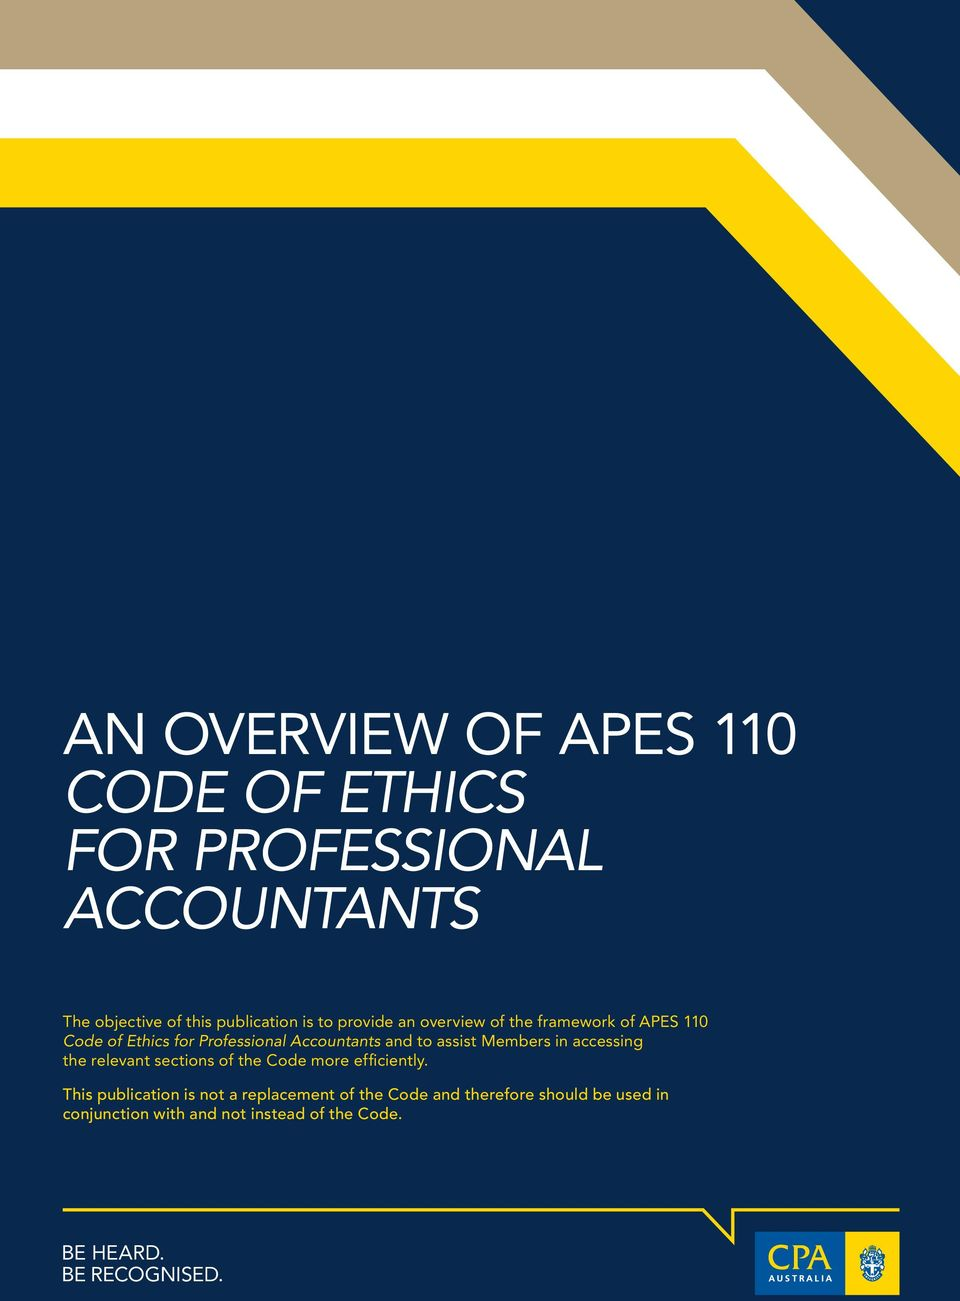 110 Code of Ethics for Professional Accountants and to assist Members in accessing the relevant sections of the Code more efficiently.